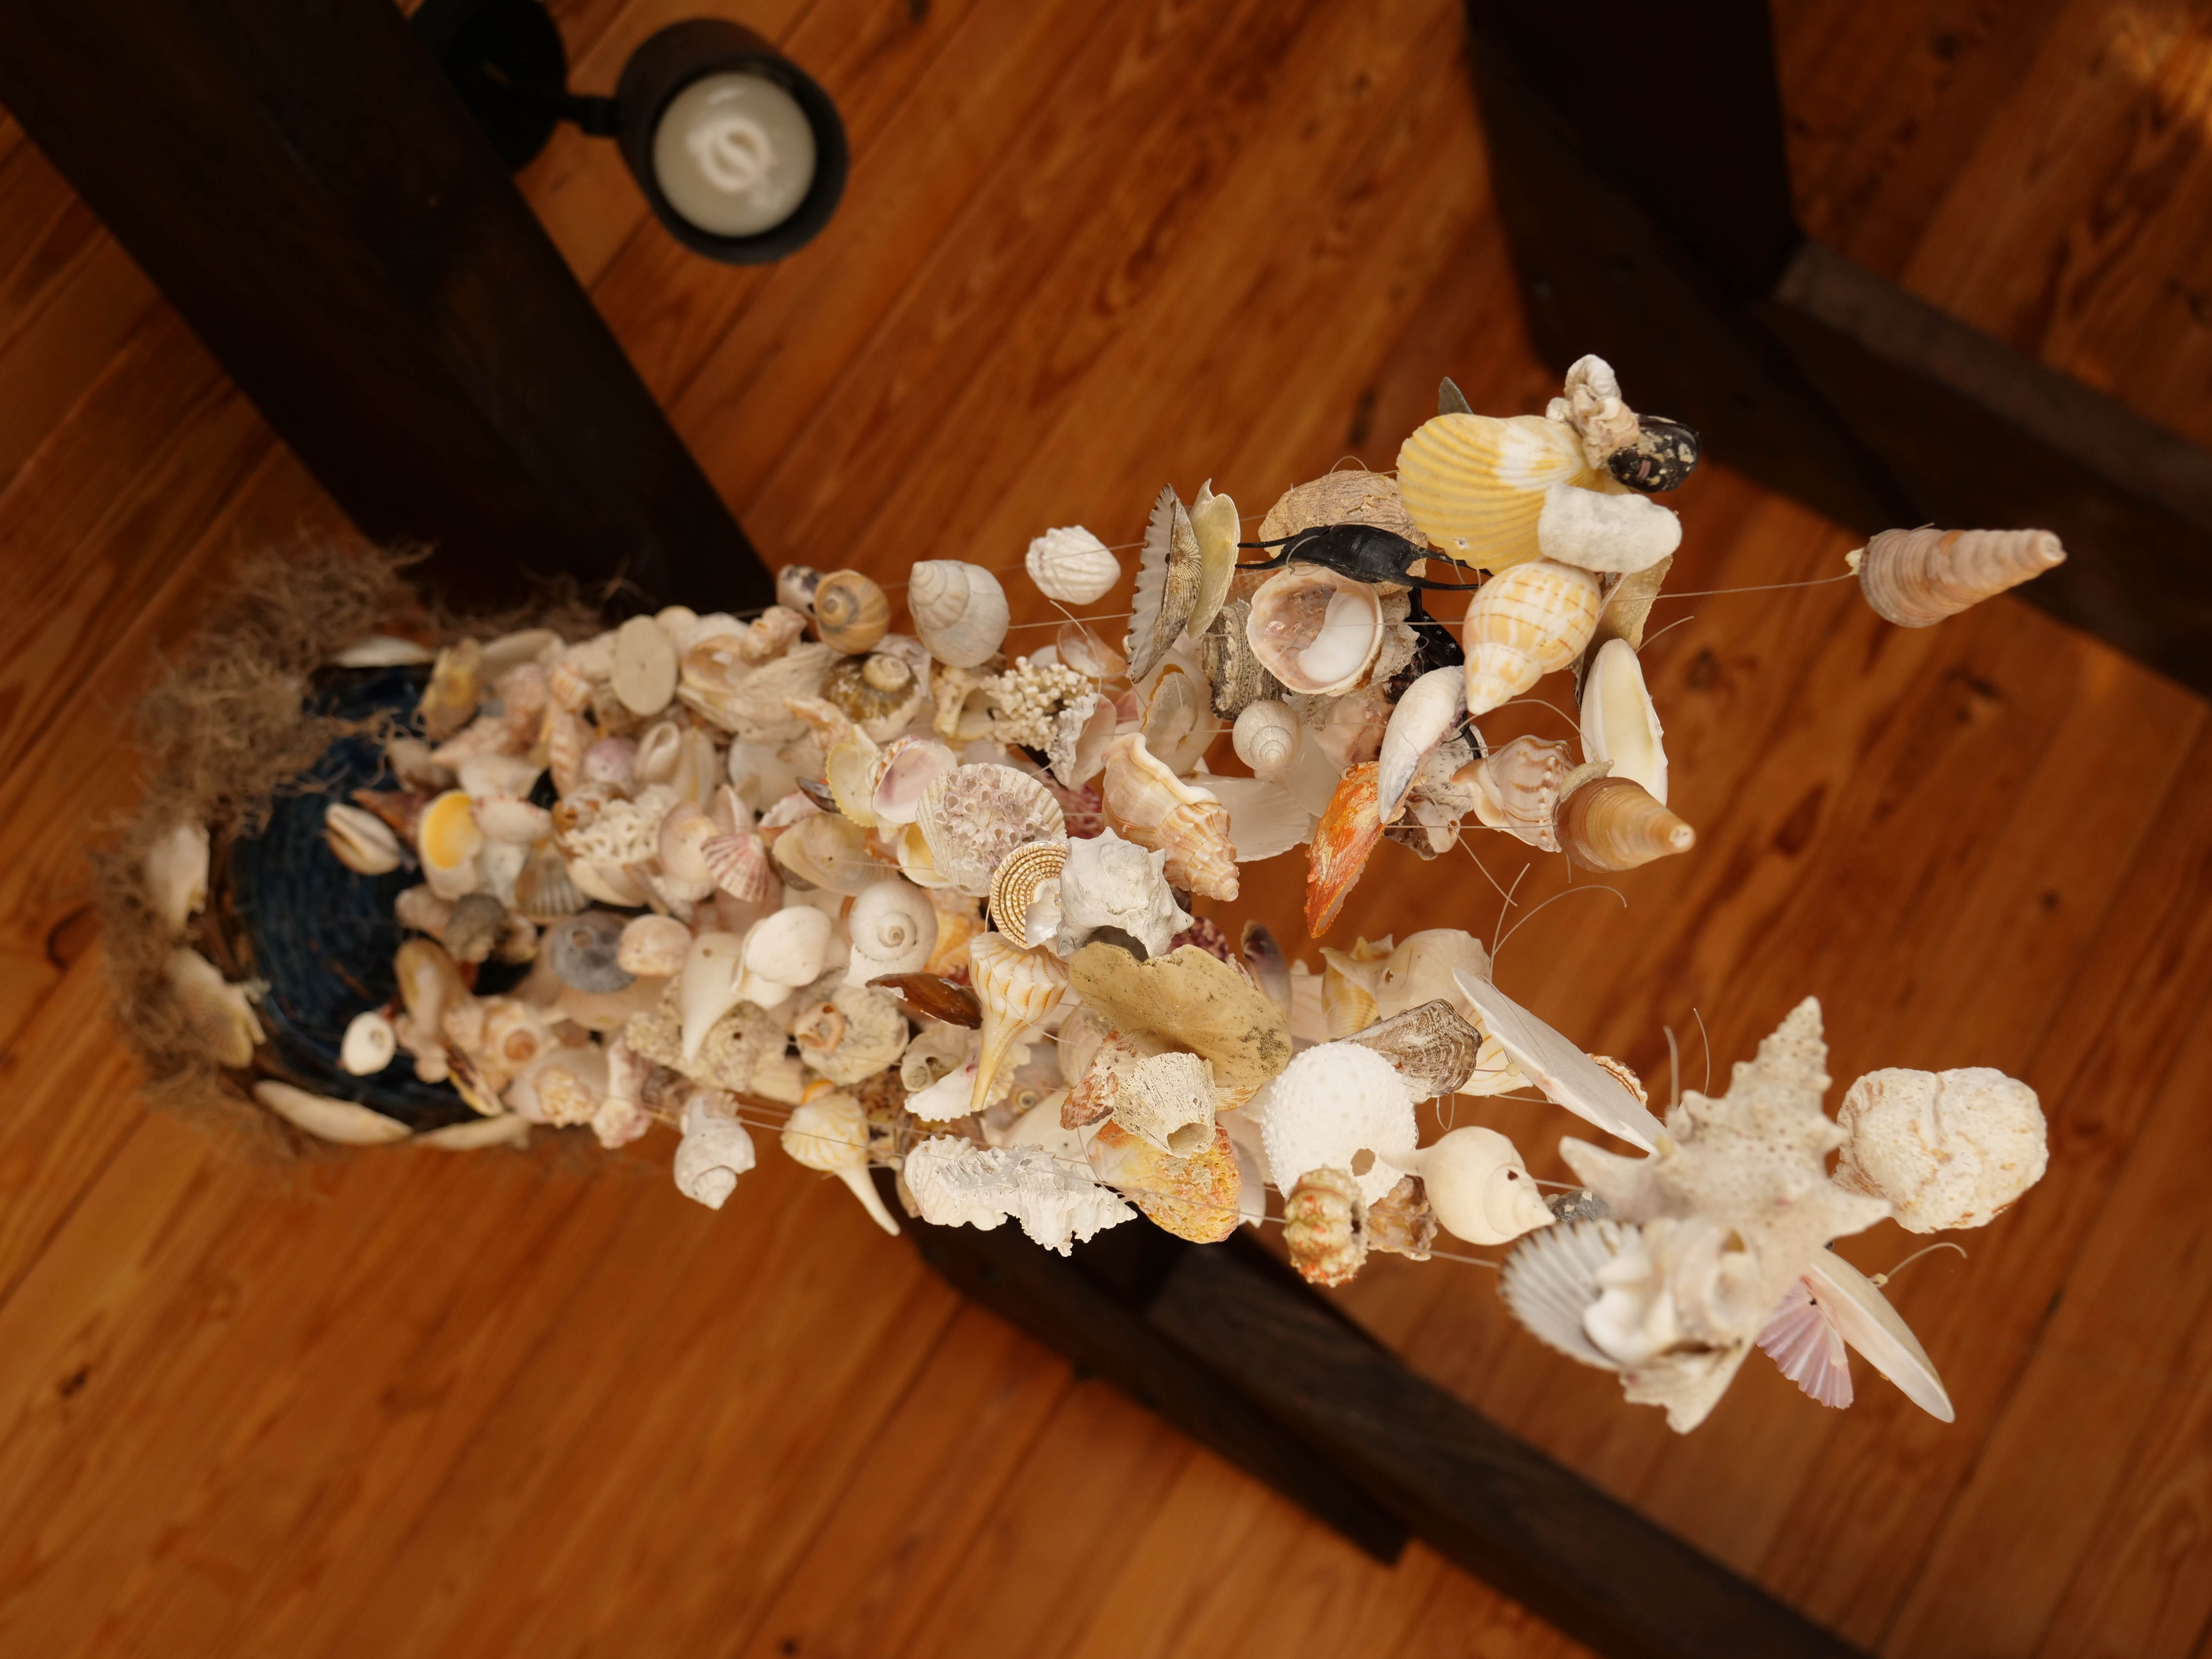 Larry Mann creates all sorts of home decor items from the seashells he has collected over the years.